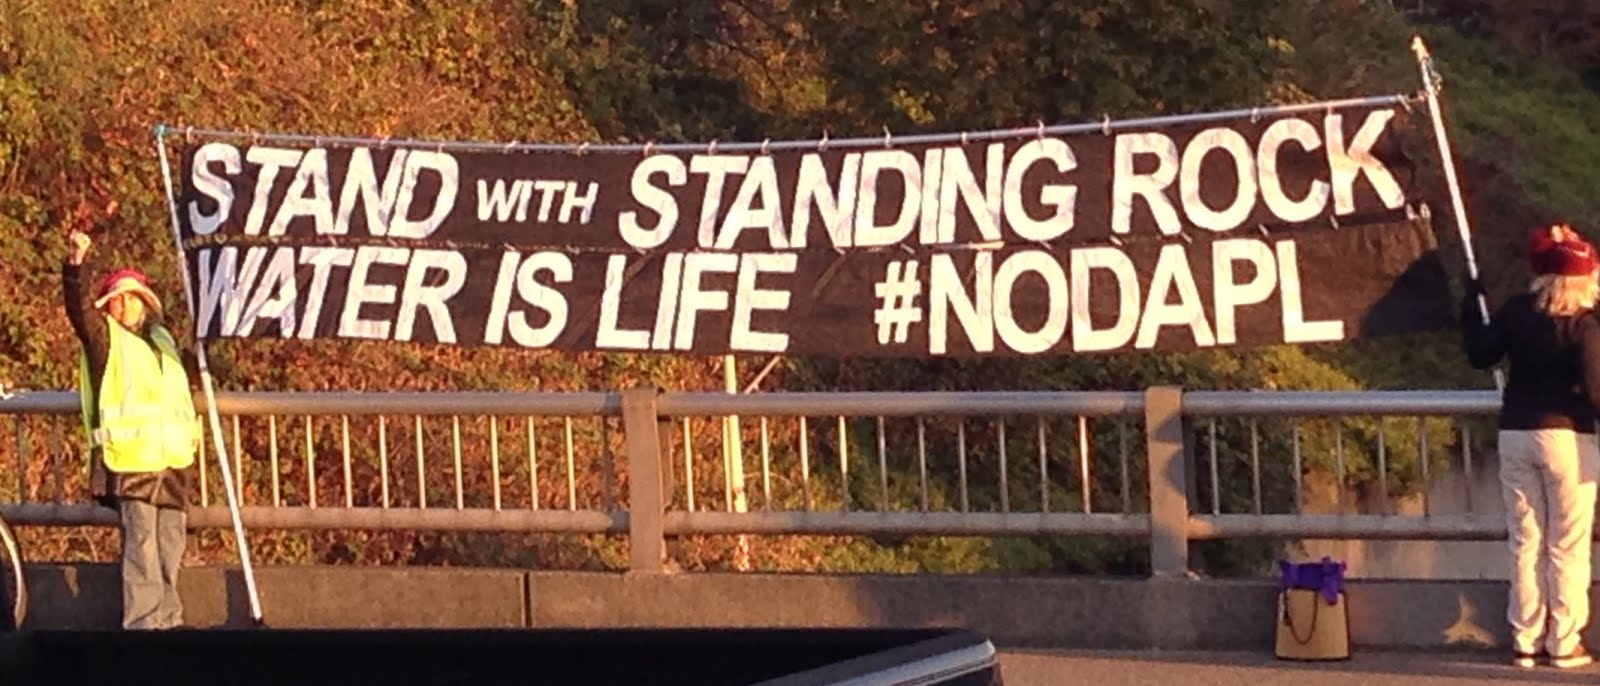 Stand with Standing Rock